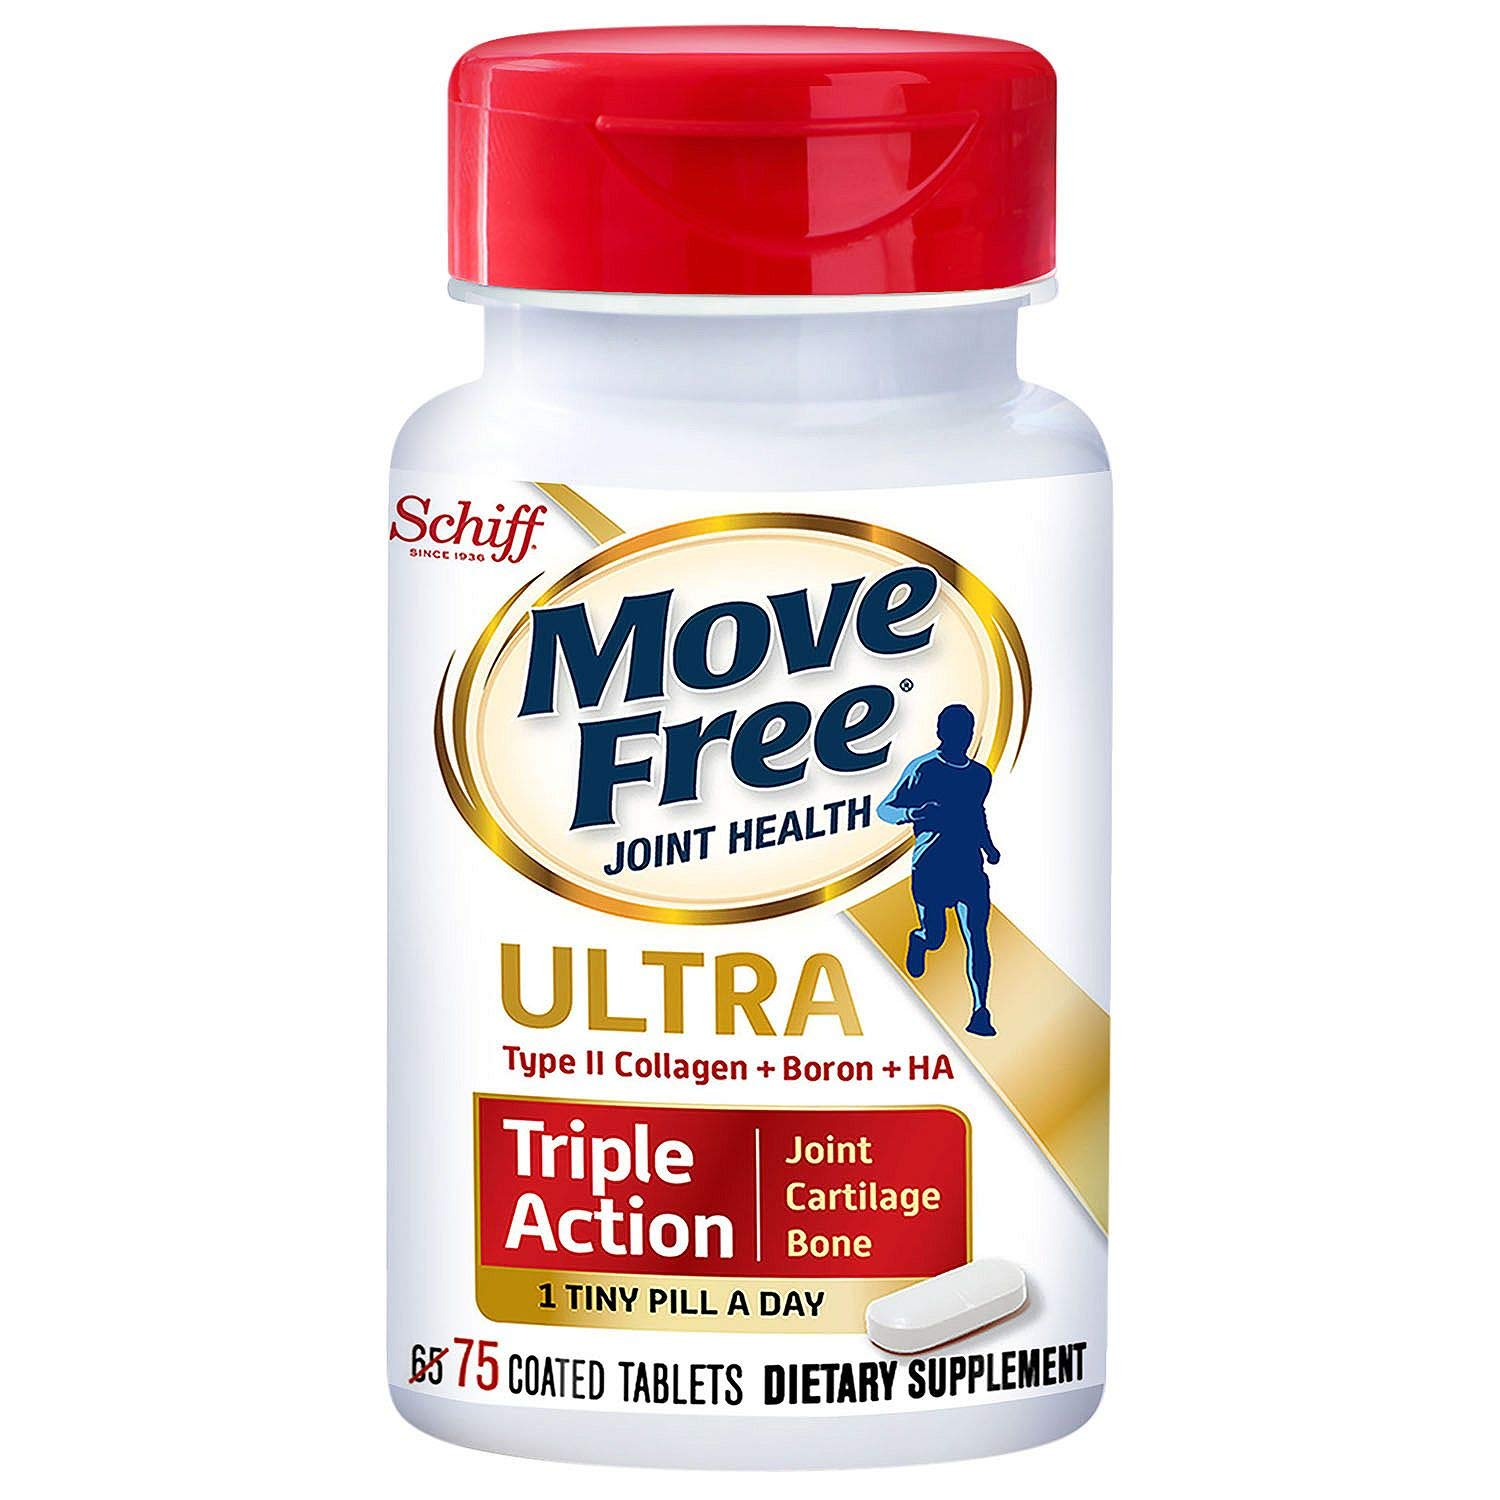 Schiff Move Free Ultra Triple Action Joint Supplement with Type II Collagen, Hyaluronic Acid, and Boron for Joint, Cartilage, and Bone Support (75 Tablets)